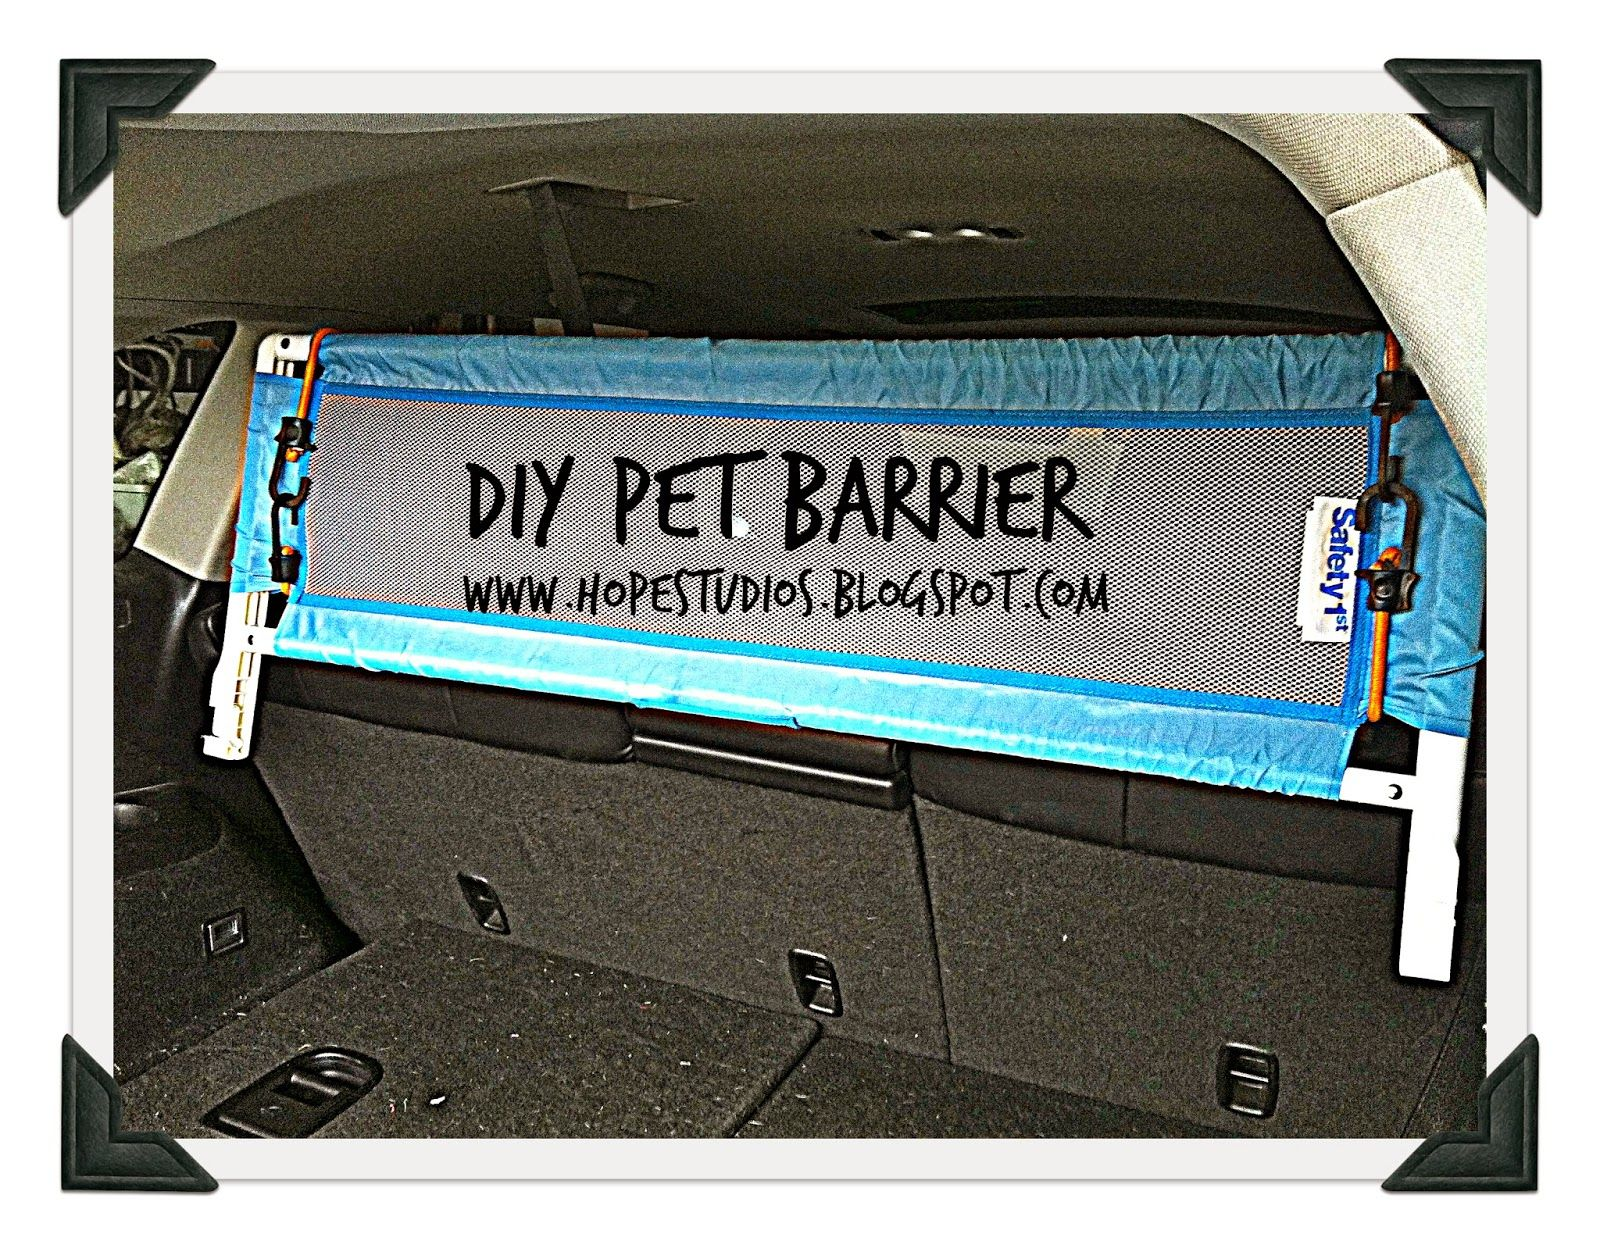 hope studios last minute pet barrier for suv crafty stuff diy pet barrier car pet. Black Bedroom Furniture Sets. Home Design Ideas